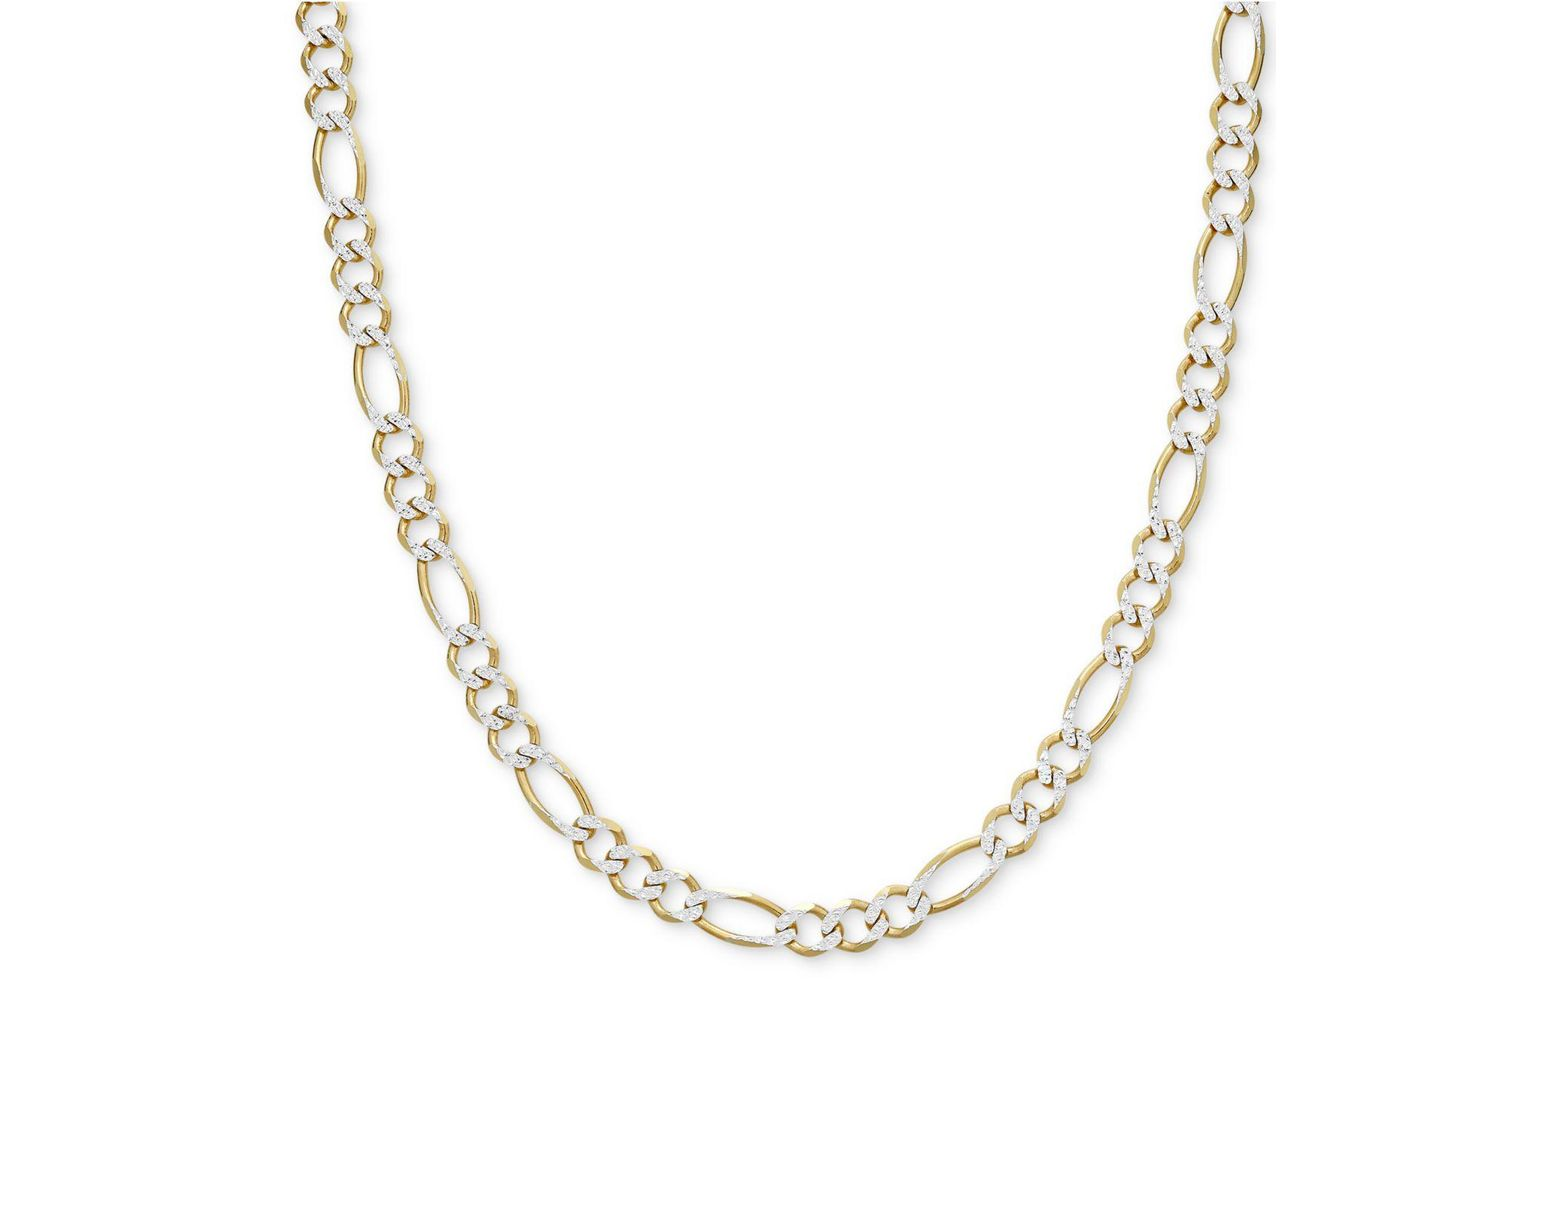 542d3456d Macy's Two-tone Figaro Link Chain 24